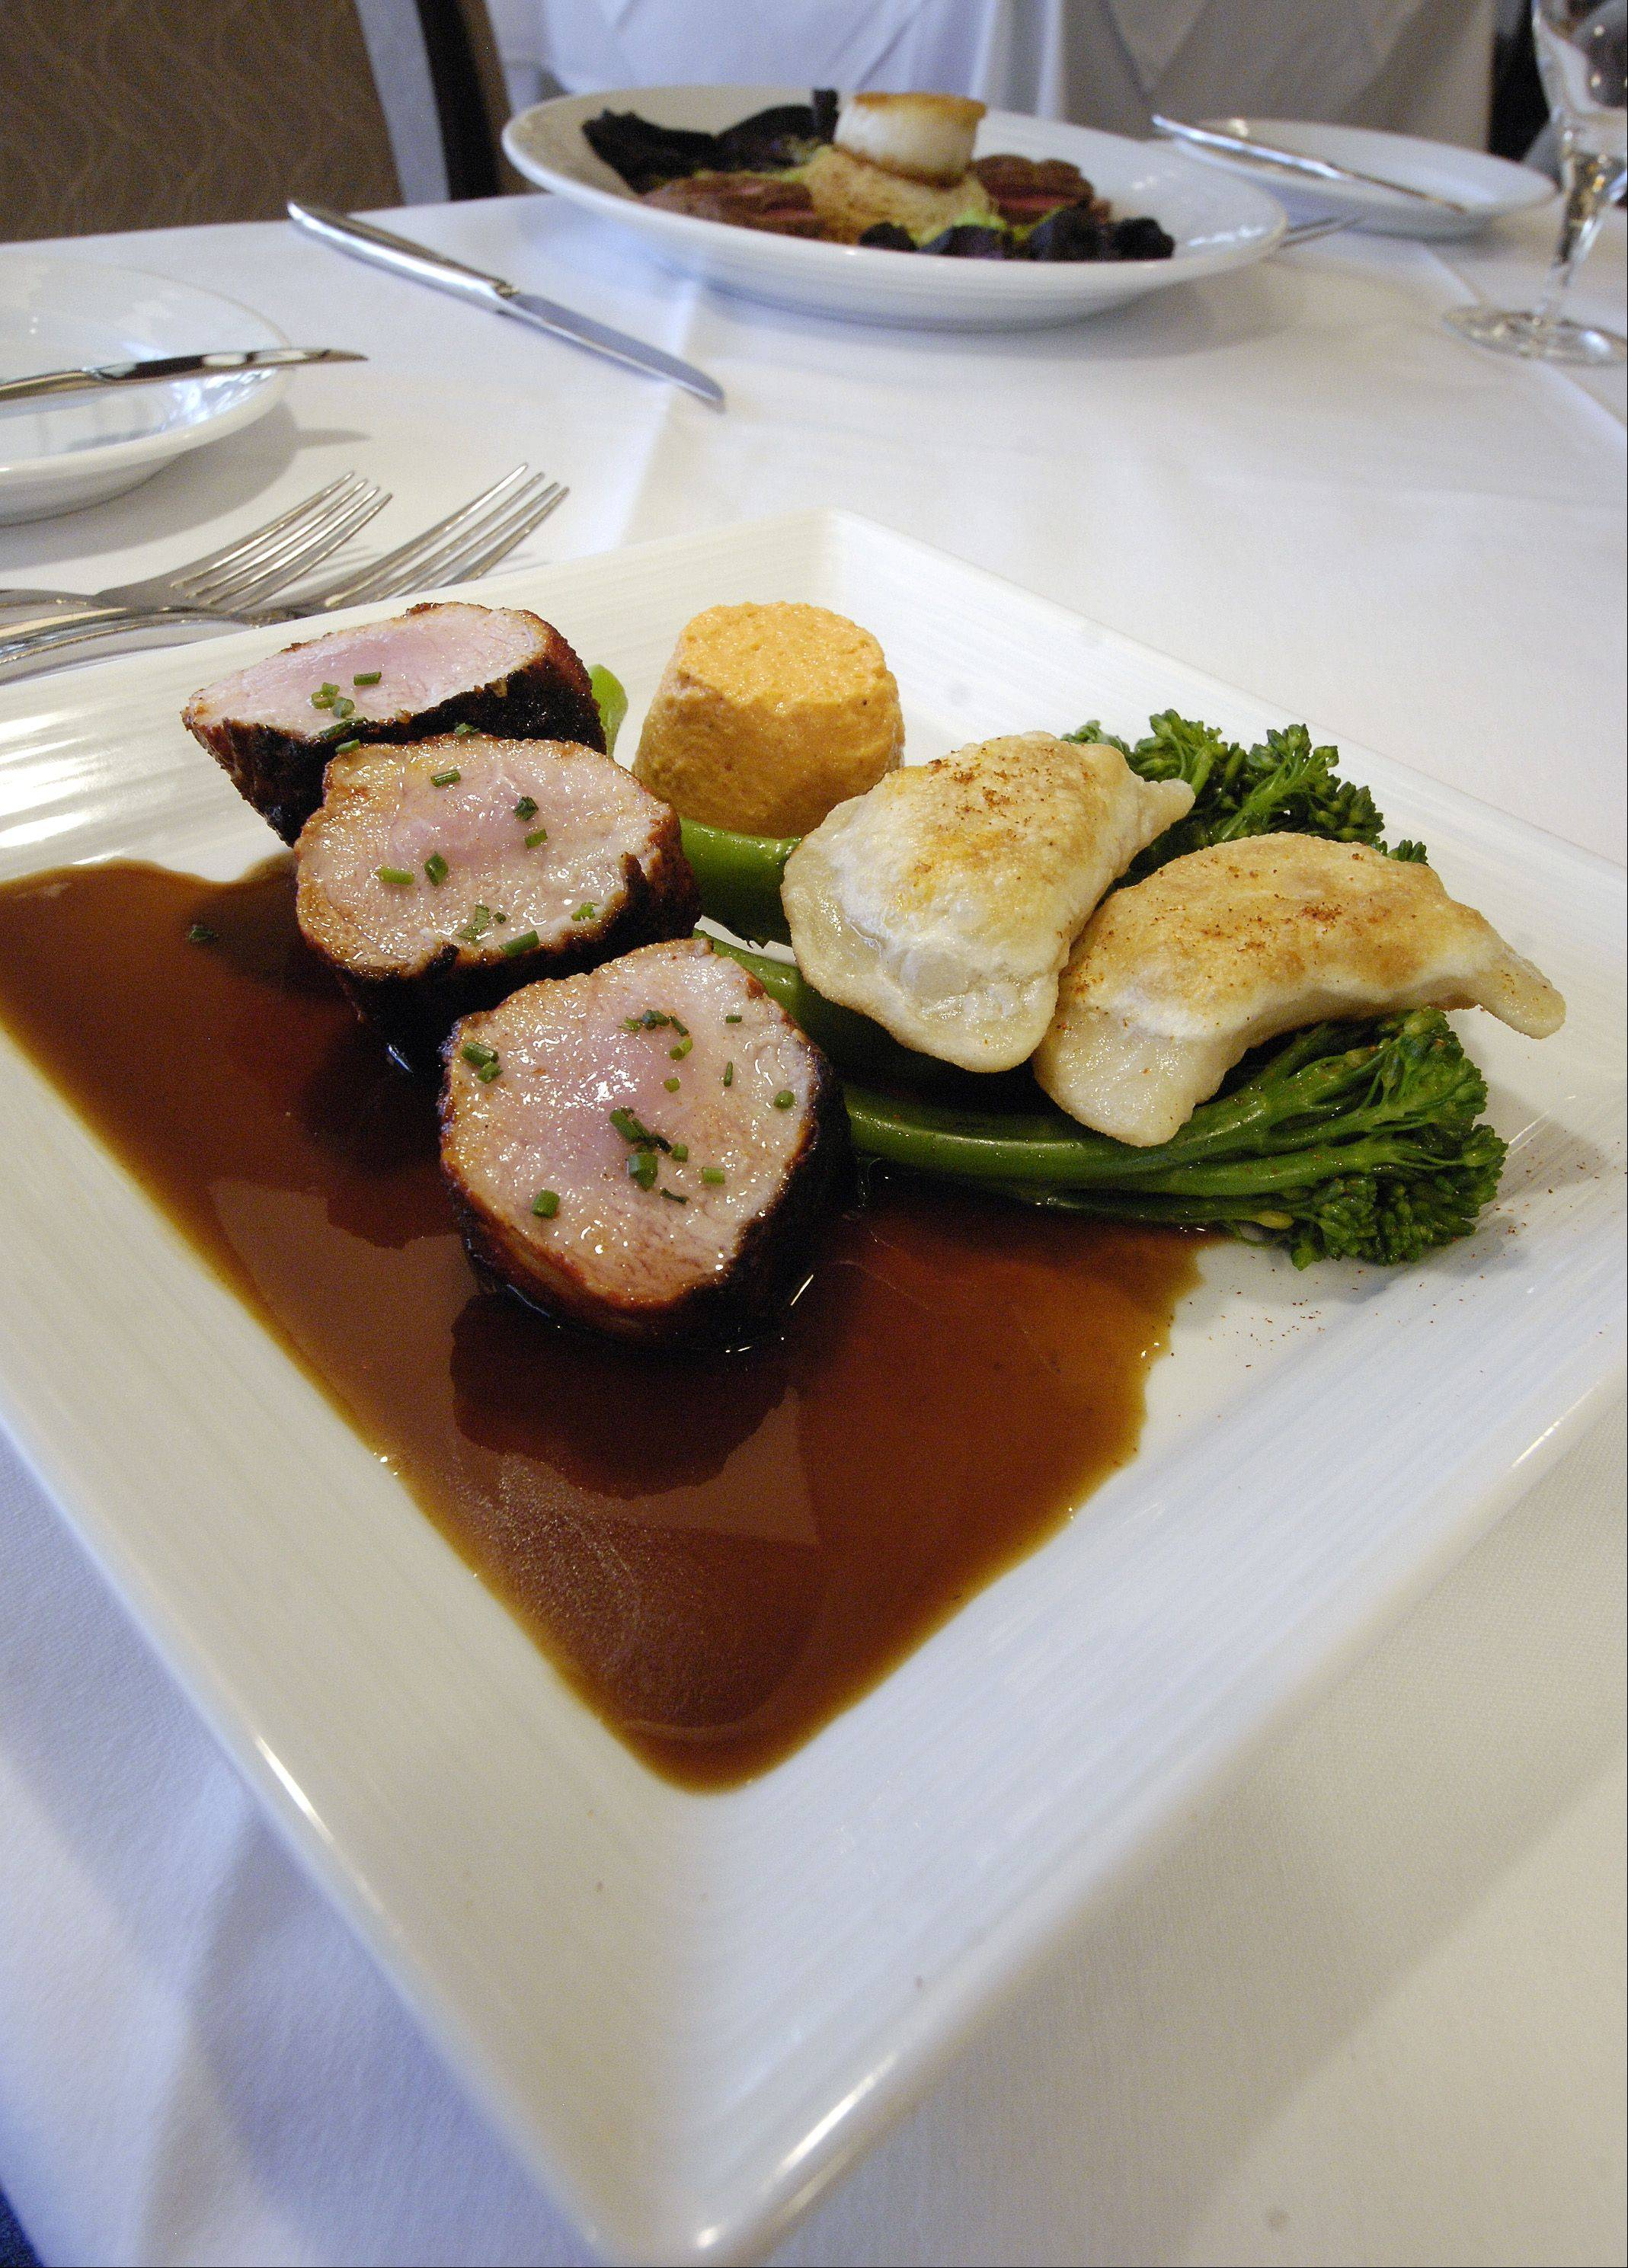 Veal is a seasonal favorite at Waterleaf restaurant at the College of DuPage's culinary center.